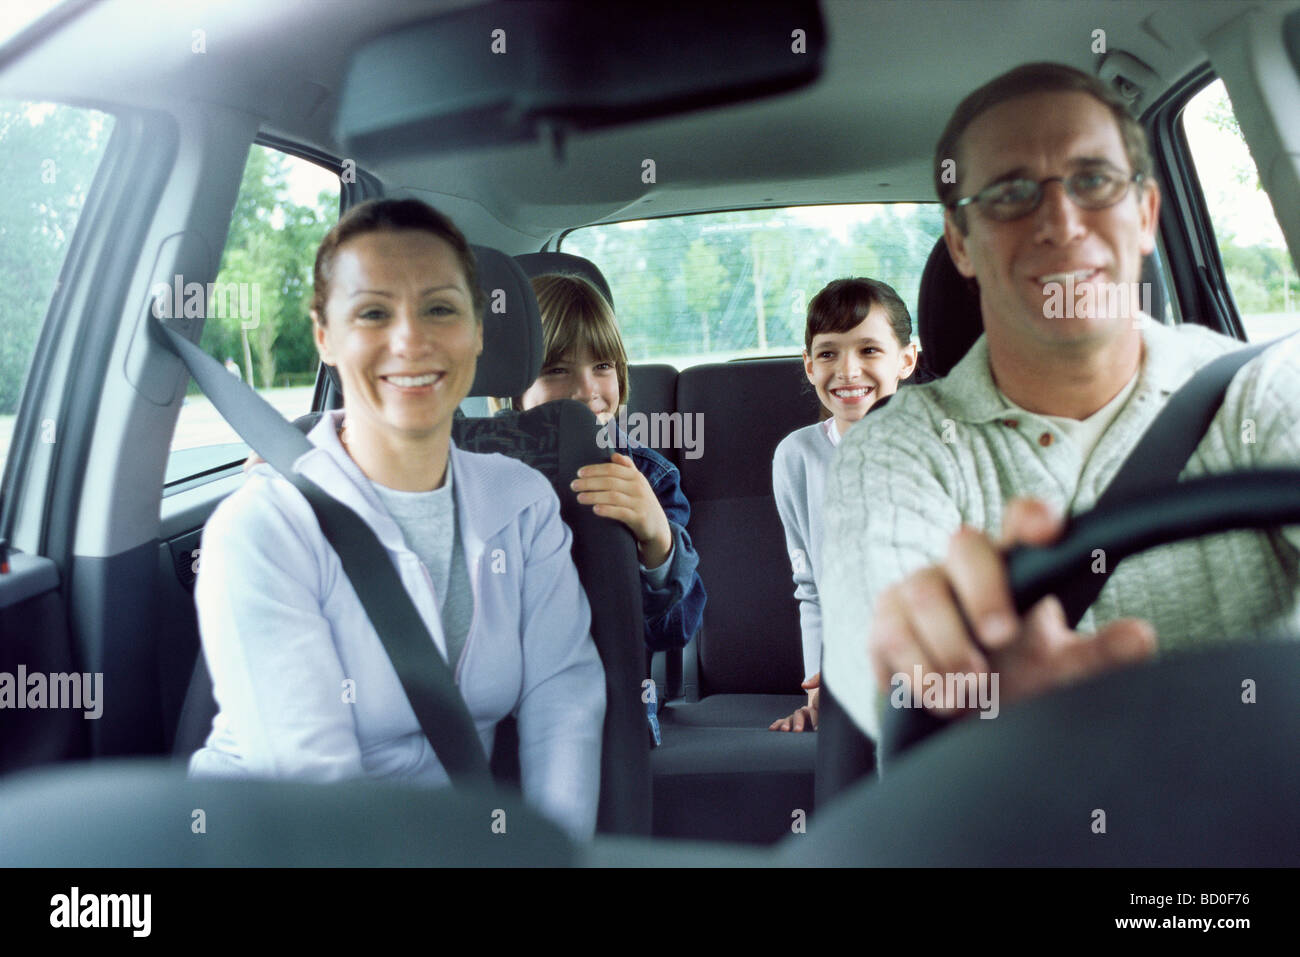 Family together in car on road trip - Stock Image